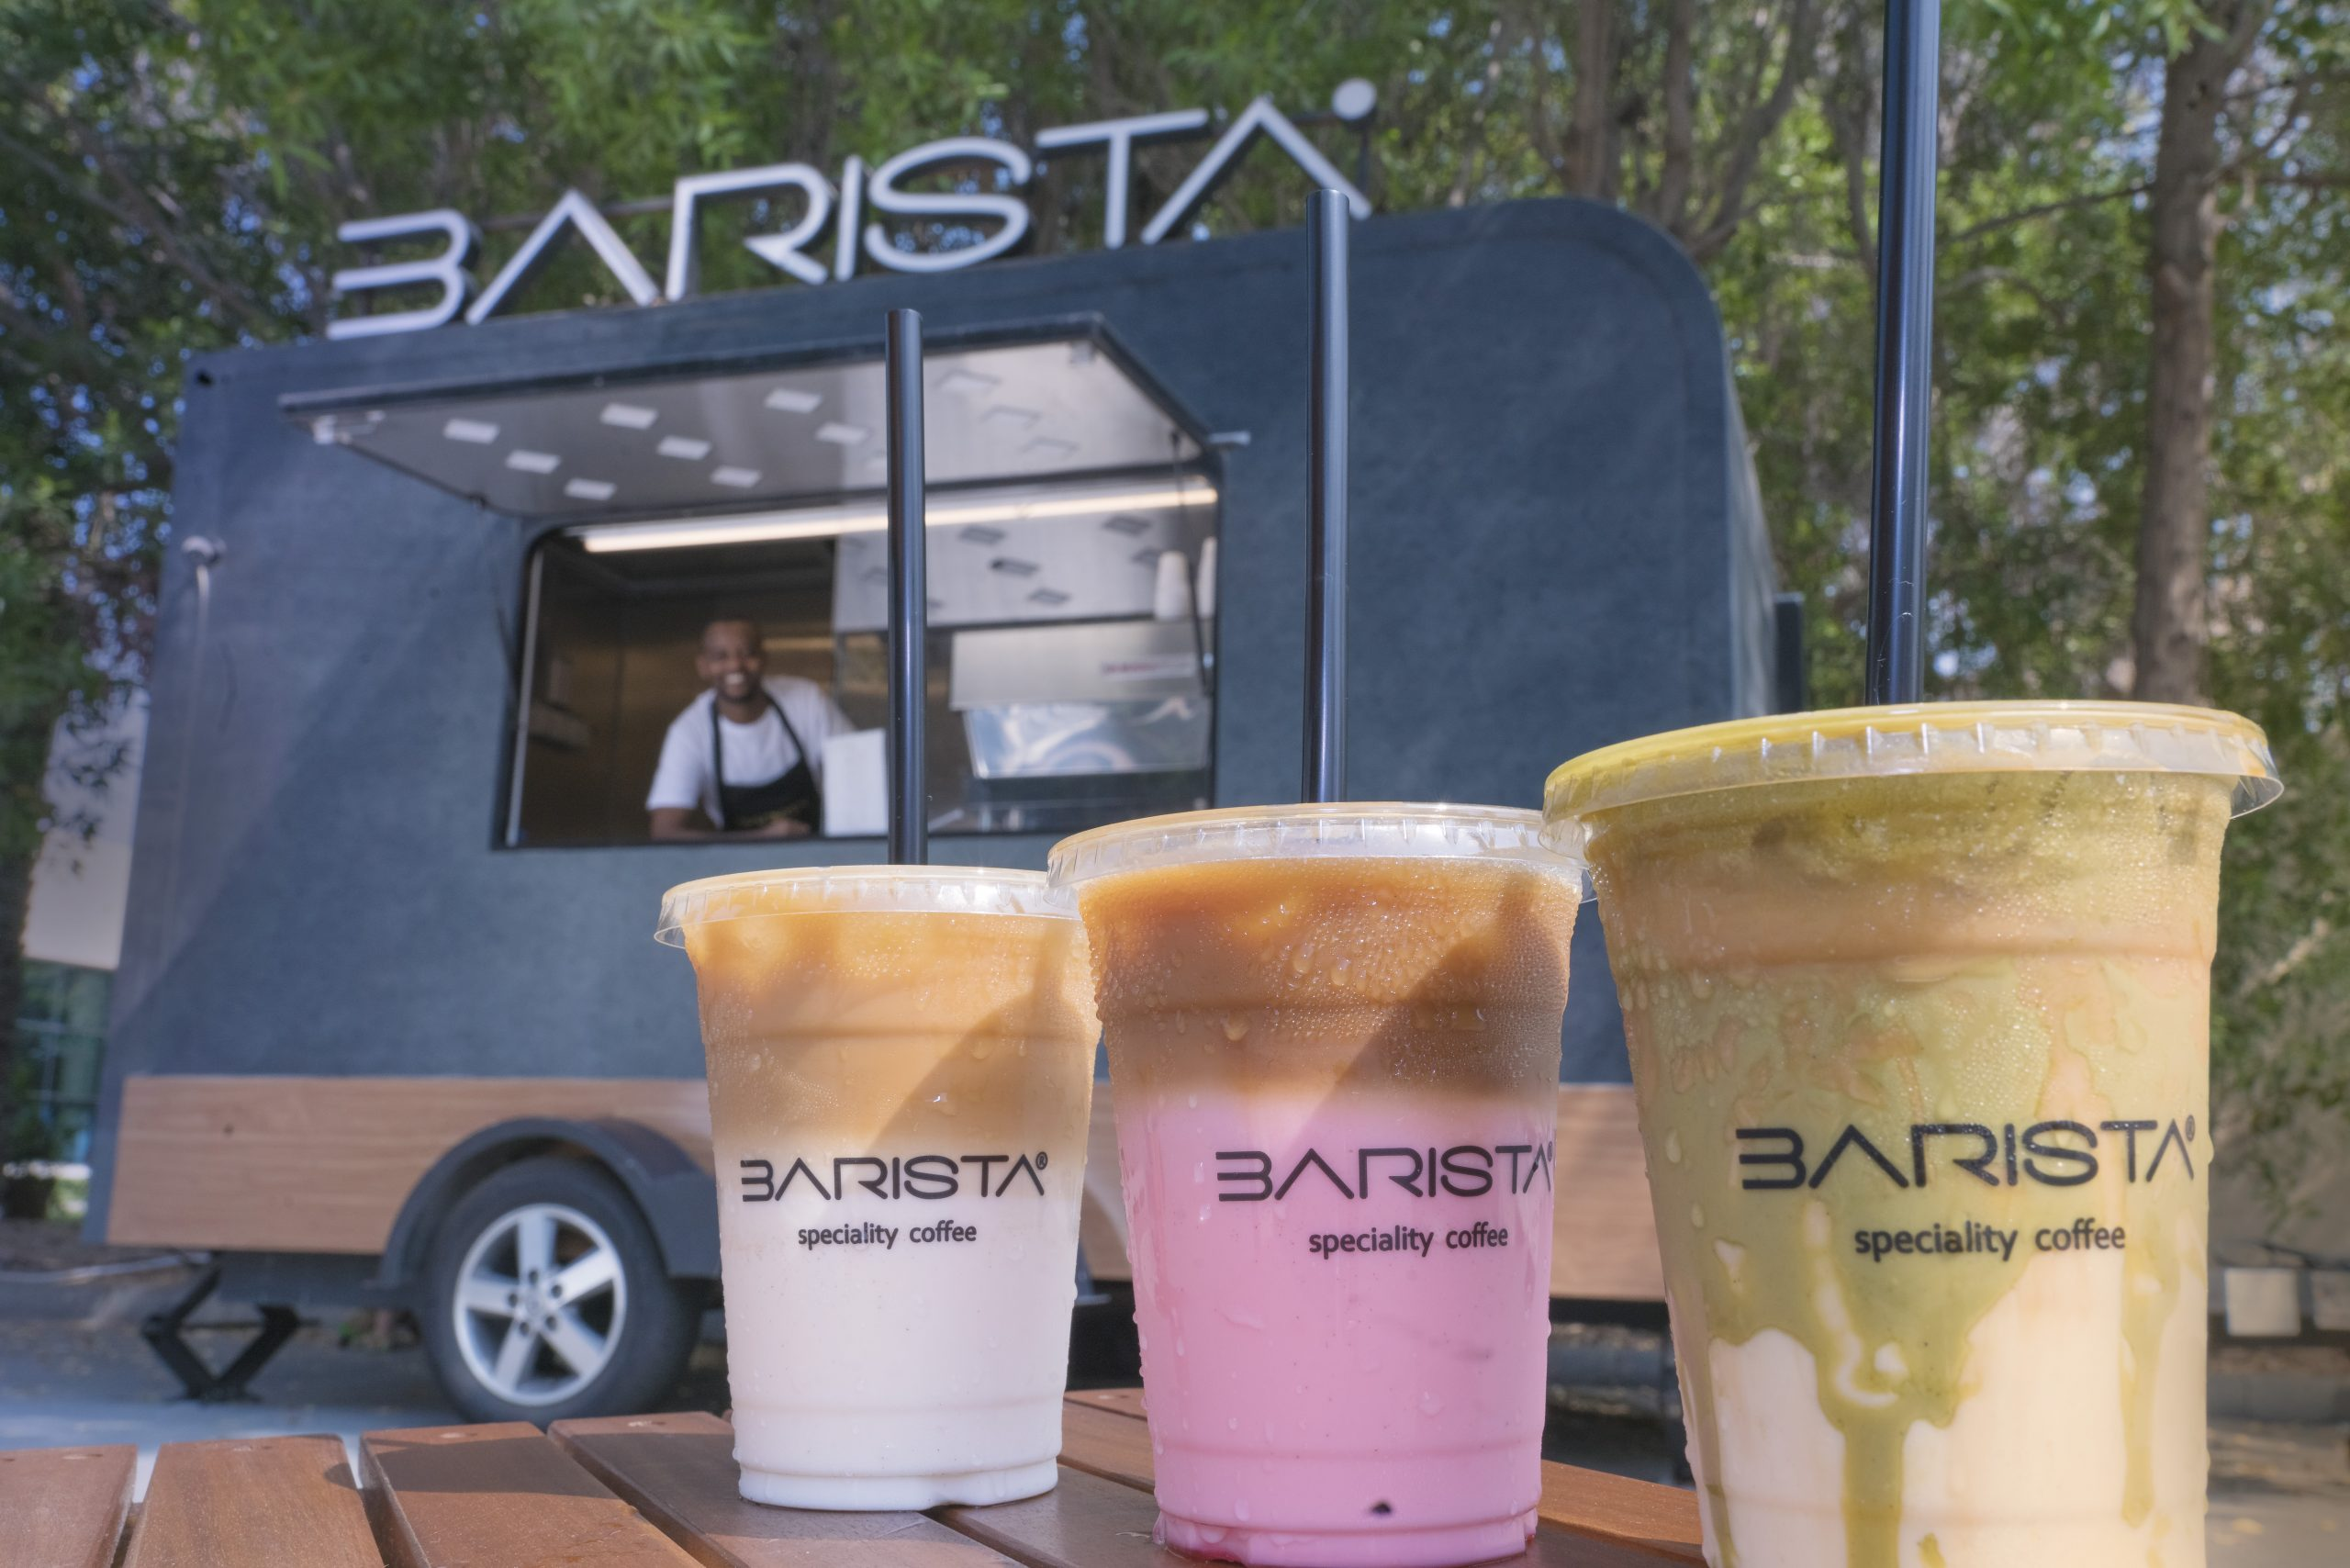 Barista Specialty Coffee - A Promo Photoshoot for Social Media